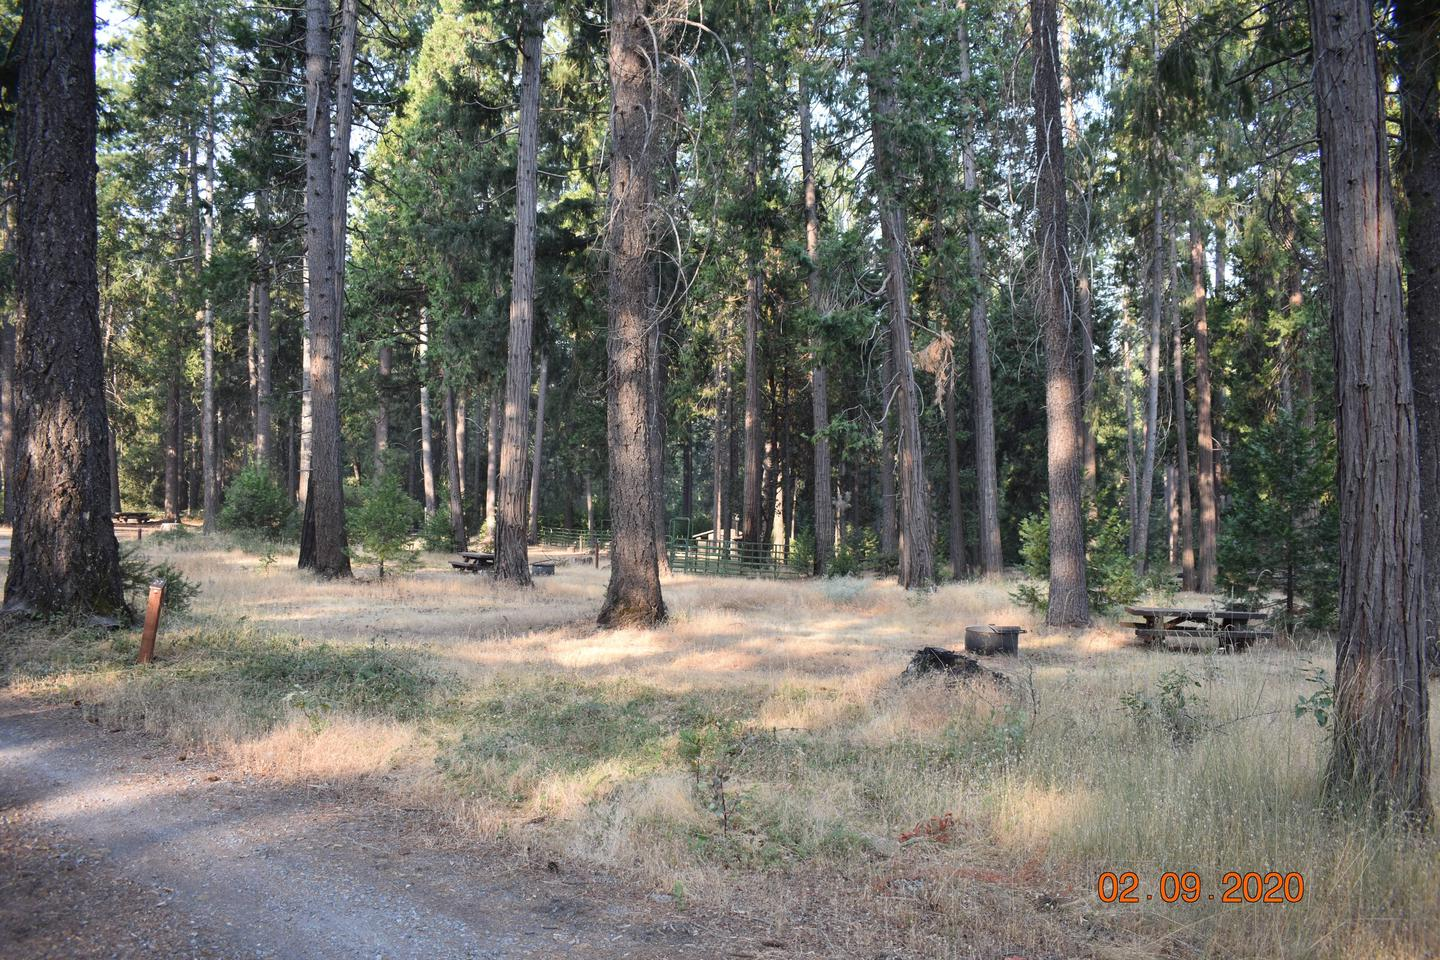 Middle loopCorrals are near some of the campsites.